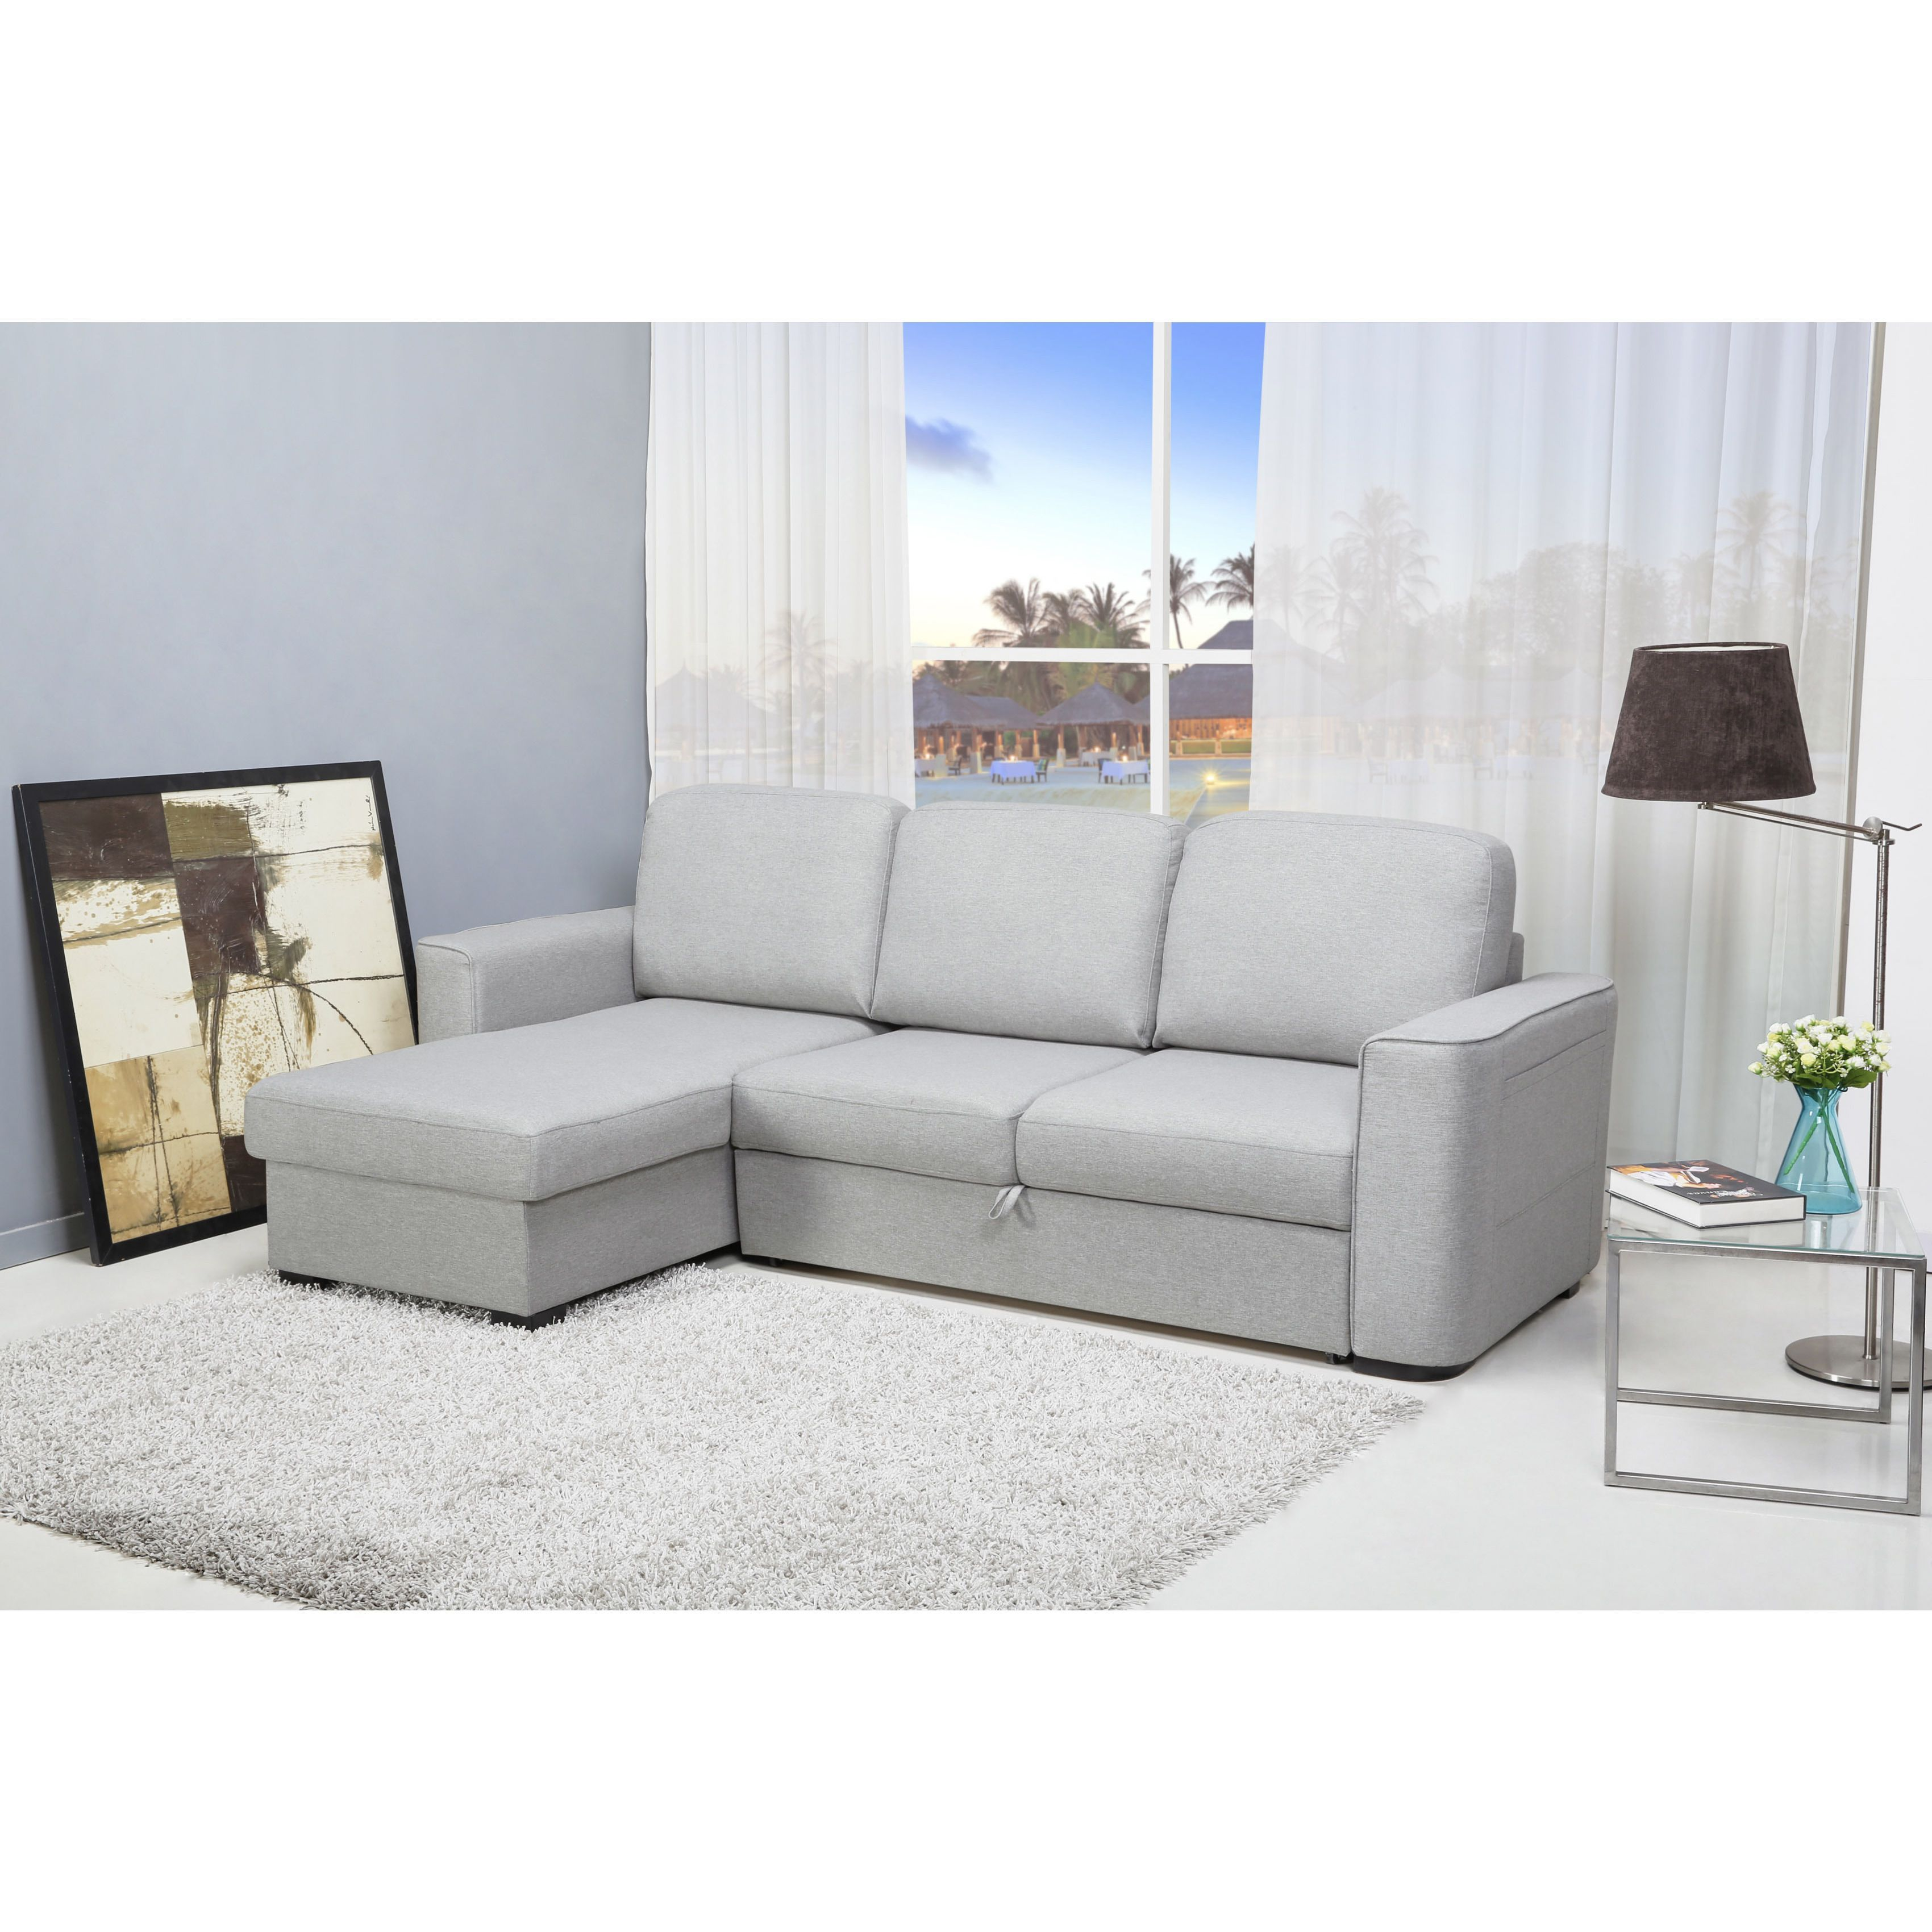 Gold Sparrow Huntington Mist Convertible Sectional Sofa Bed